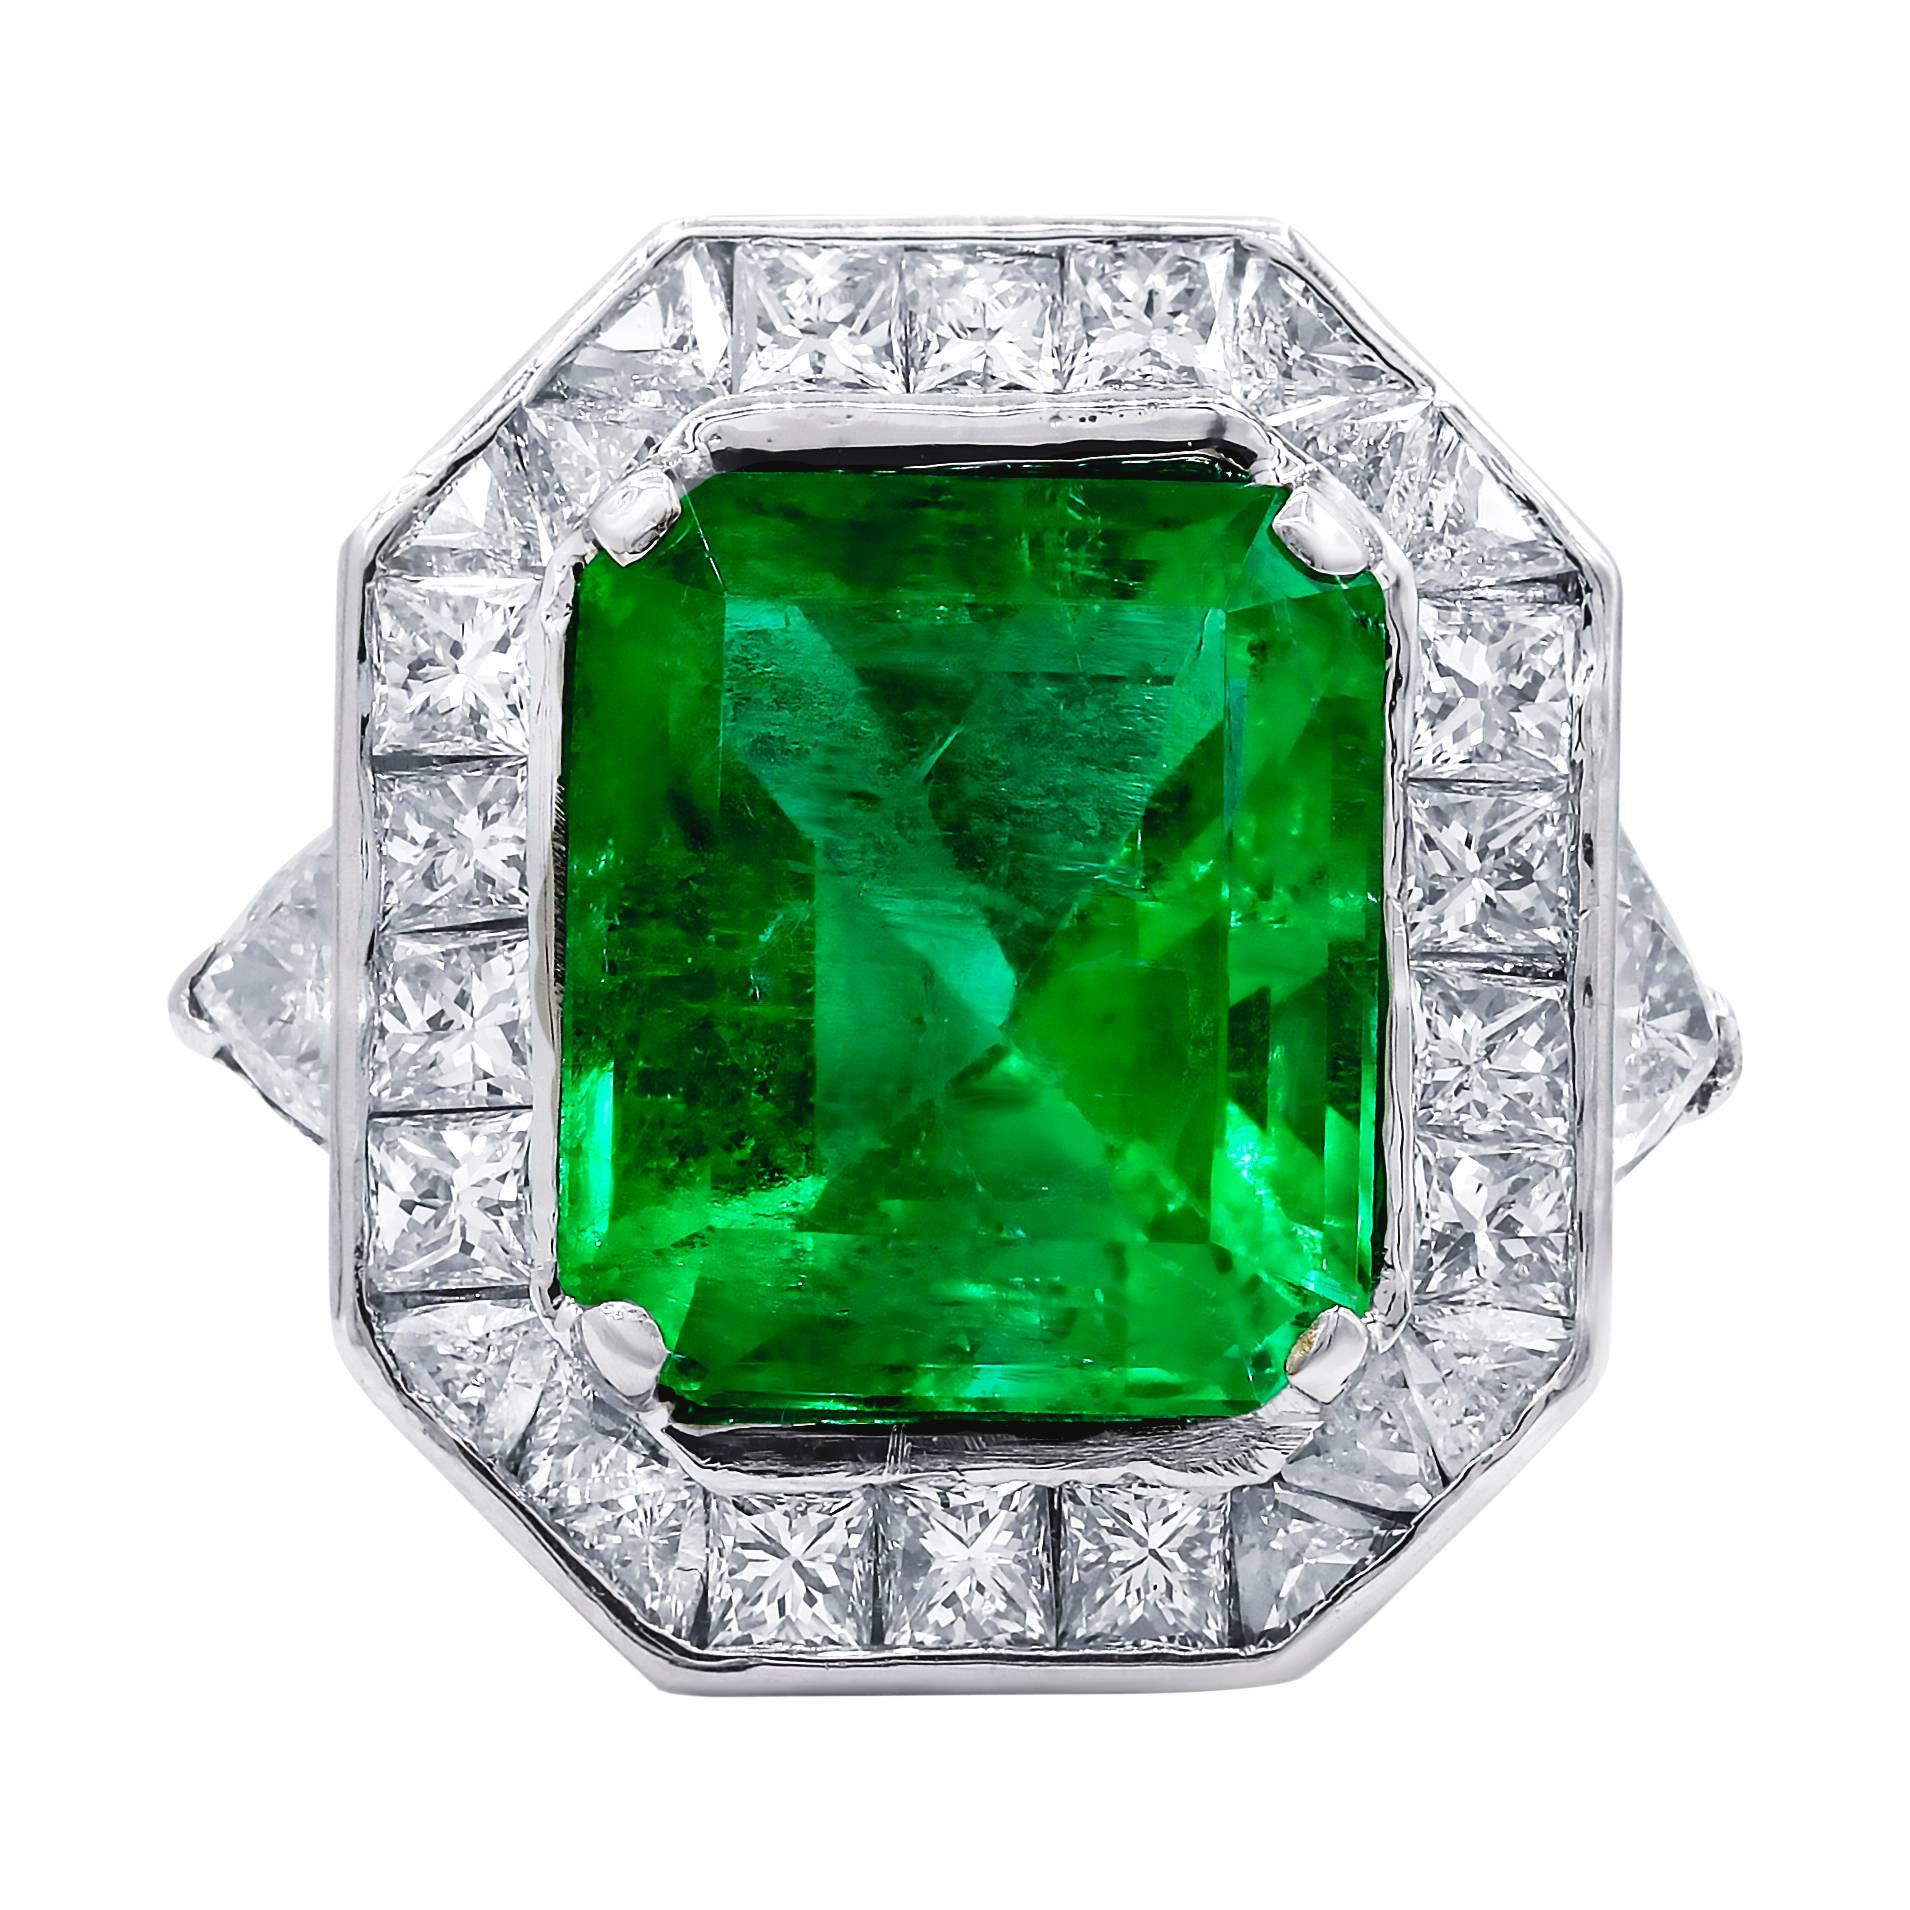 ring square rings cut collections with classic emerald emerlad side featuring graff trilliant diamond stones a